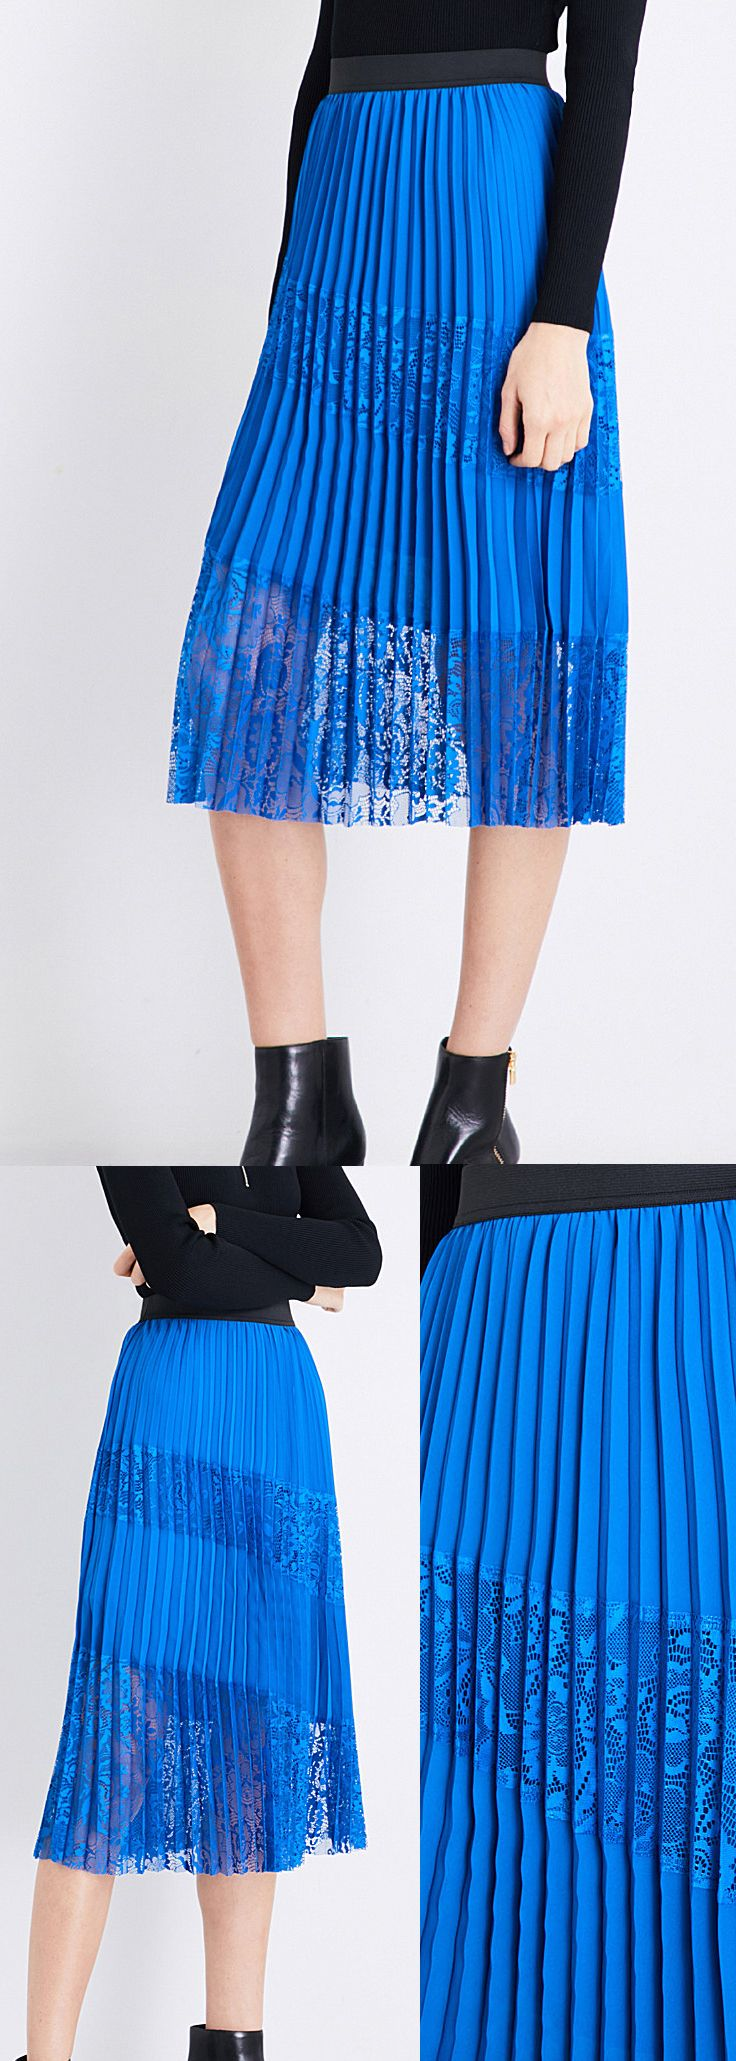 Maje Jarane high-rise pleated skirt. Maje pleated skirt. It's Royal Blue, it's Midi Skirt Length, it's pleated and it's Laced. What more can you ask for. High-rise, elasticated waistband, all-over pleats, asymmetric lace panels. Winter Wedding Guest Outfit ideas. Autumn Winter 2017 Pleats Trend. #pleats #midiskirt #fashion #fashionista #fashionaddict #affiliatelink #giftsforher #weddings